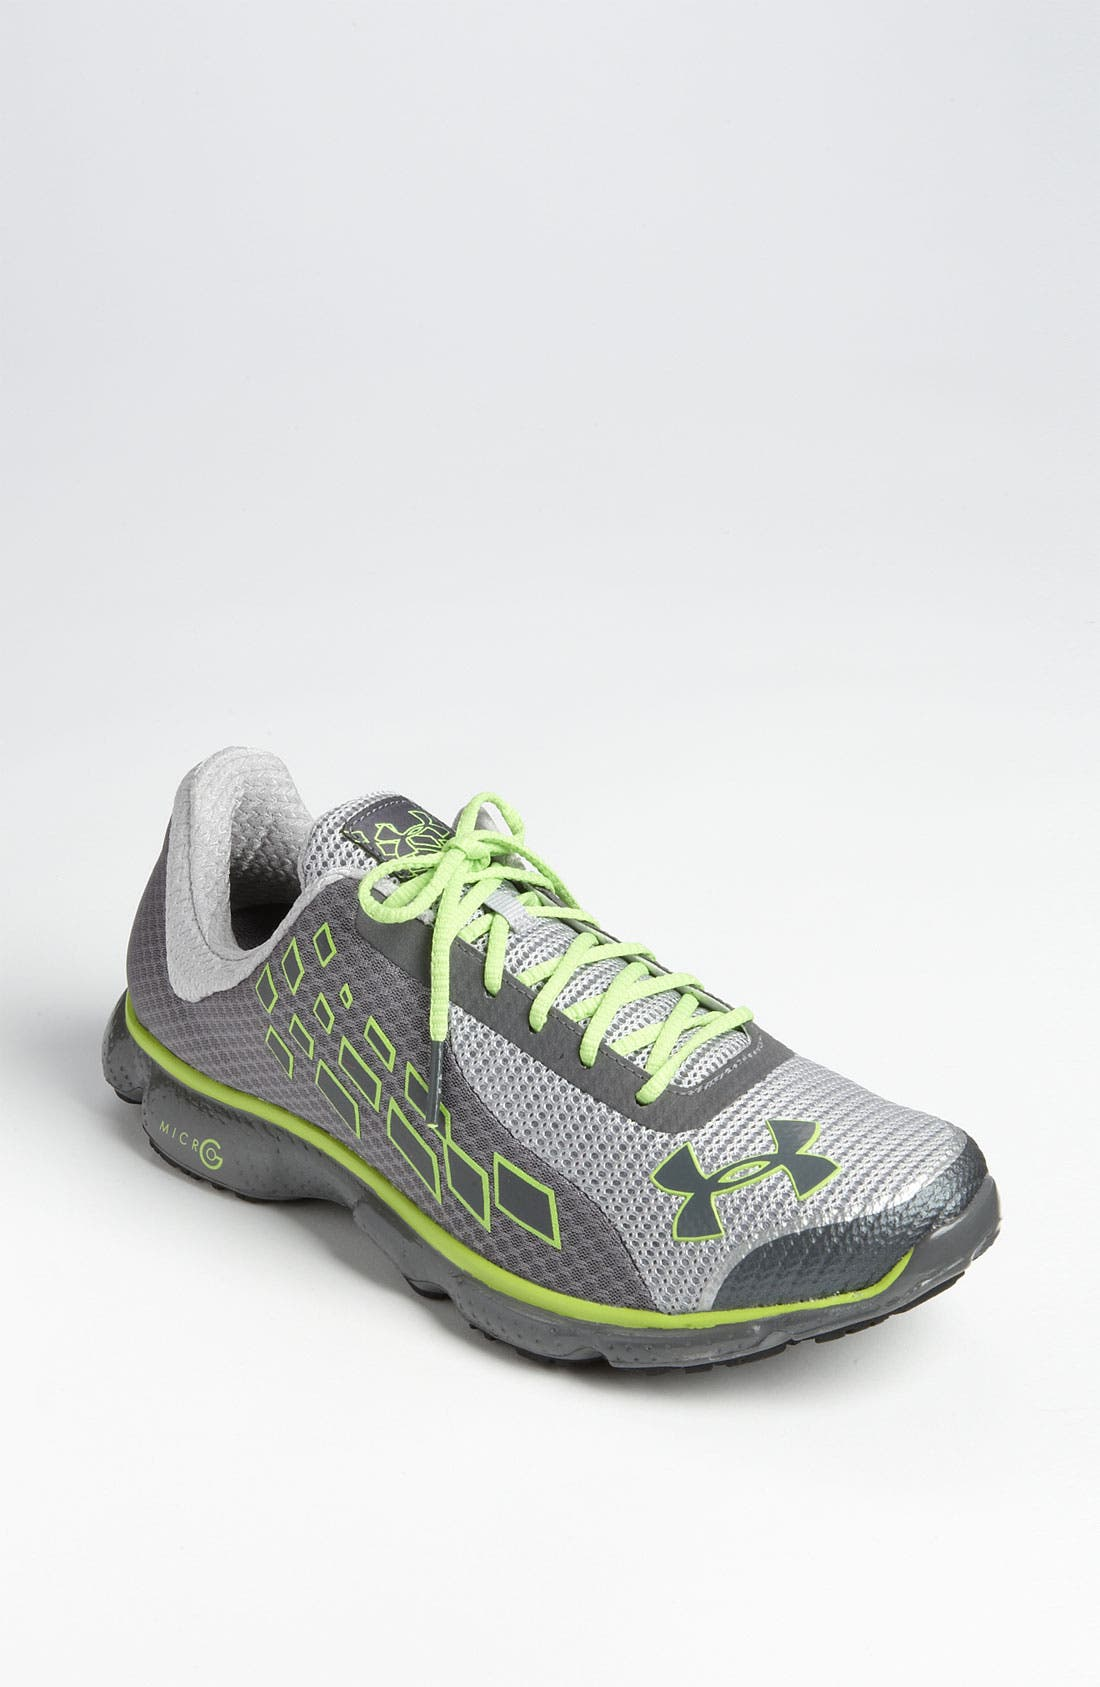 Alternate Image 1 Selected - Under Armour 'Stealth' Training Shoe (Women)